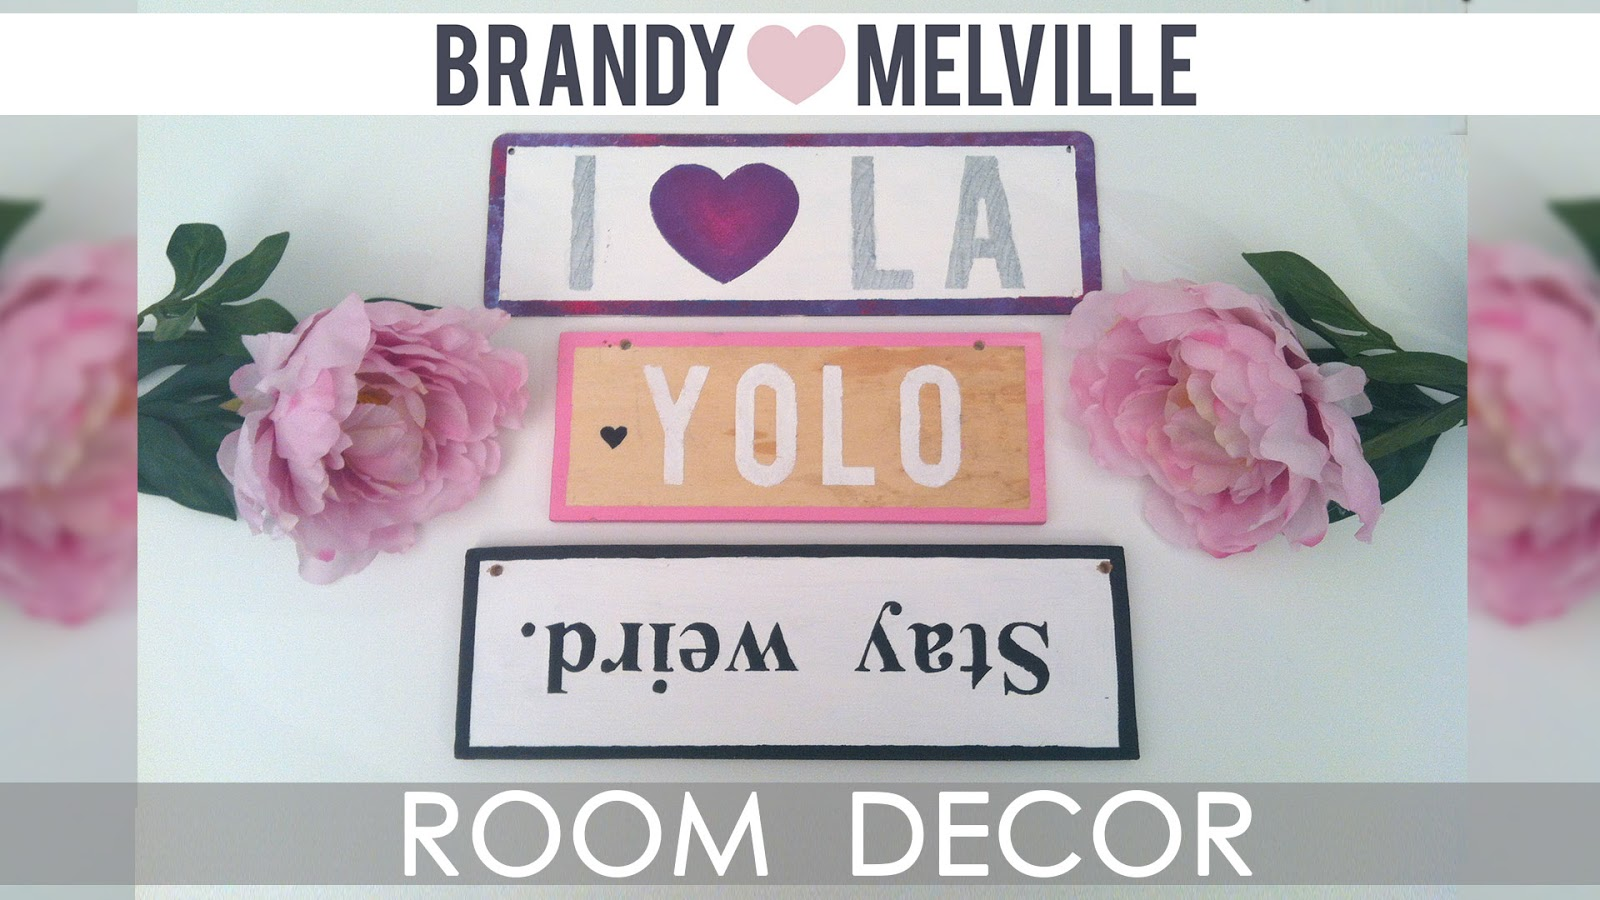 http://serenaloserlikeme.blogspot.it/2014/07/diy-room-decor-brandy-melville-inspired_21.html